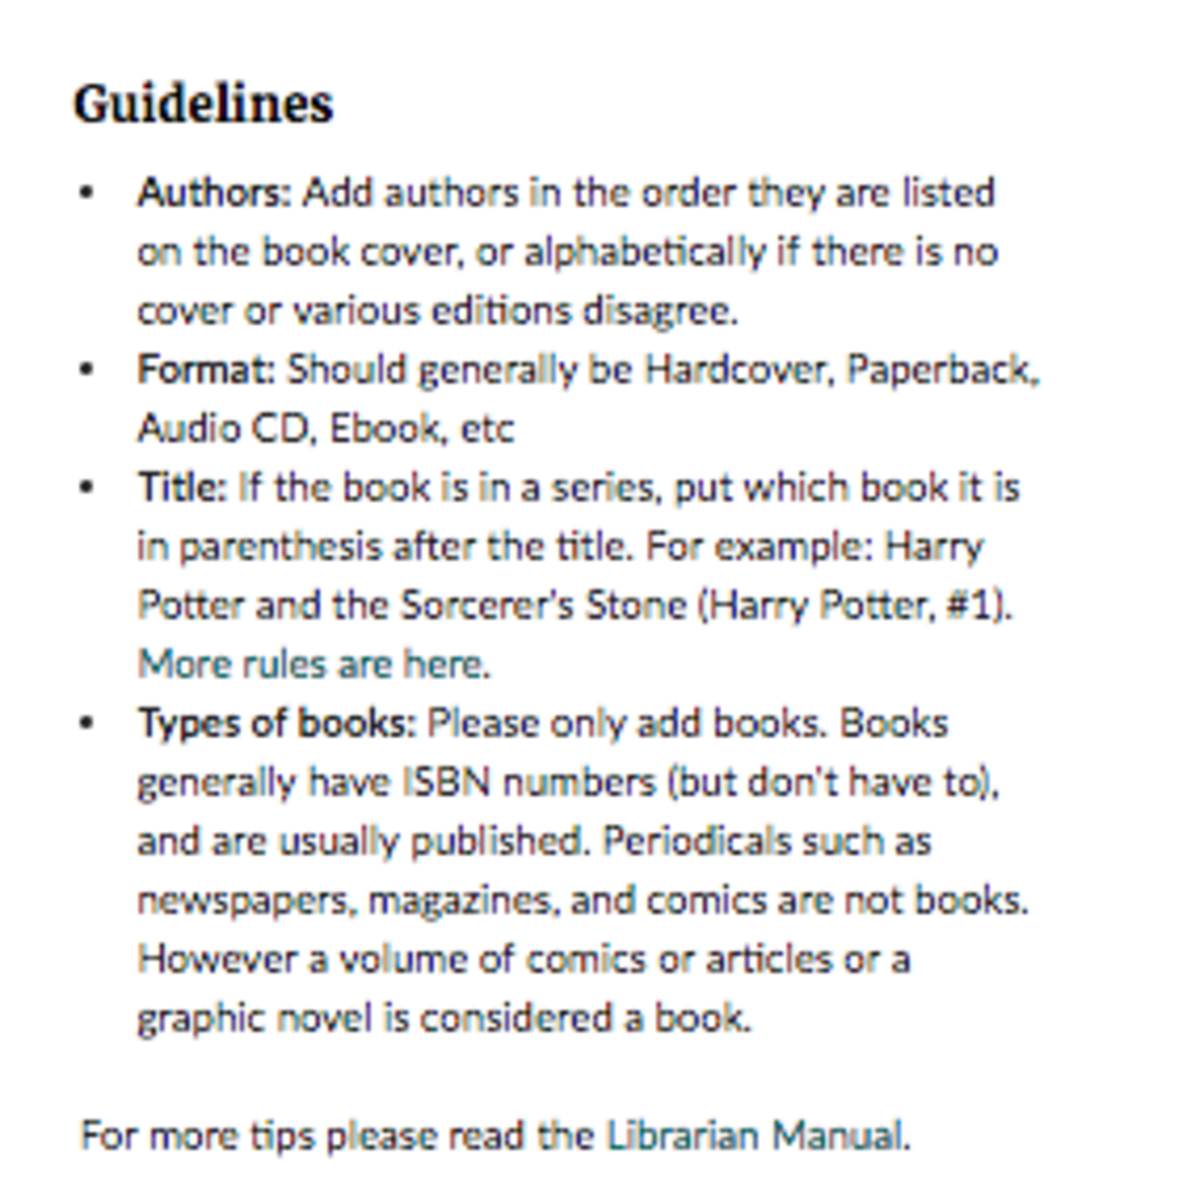 Goodreads guidelines to add a new book